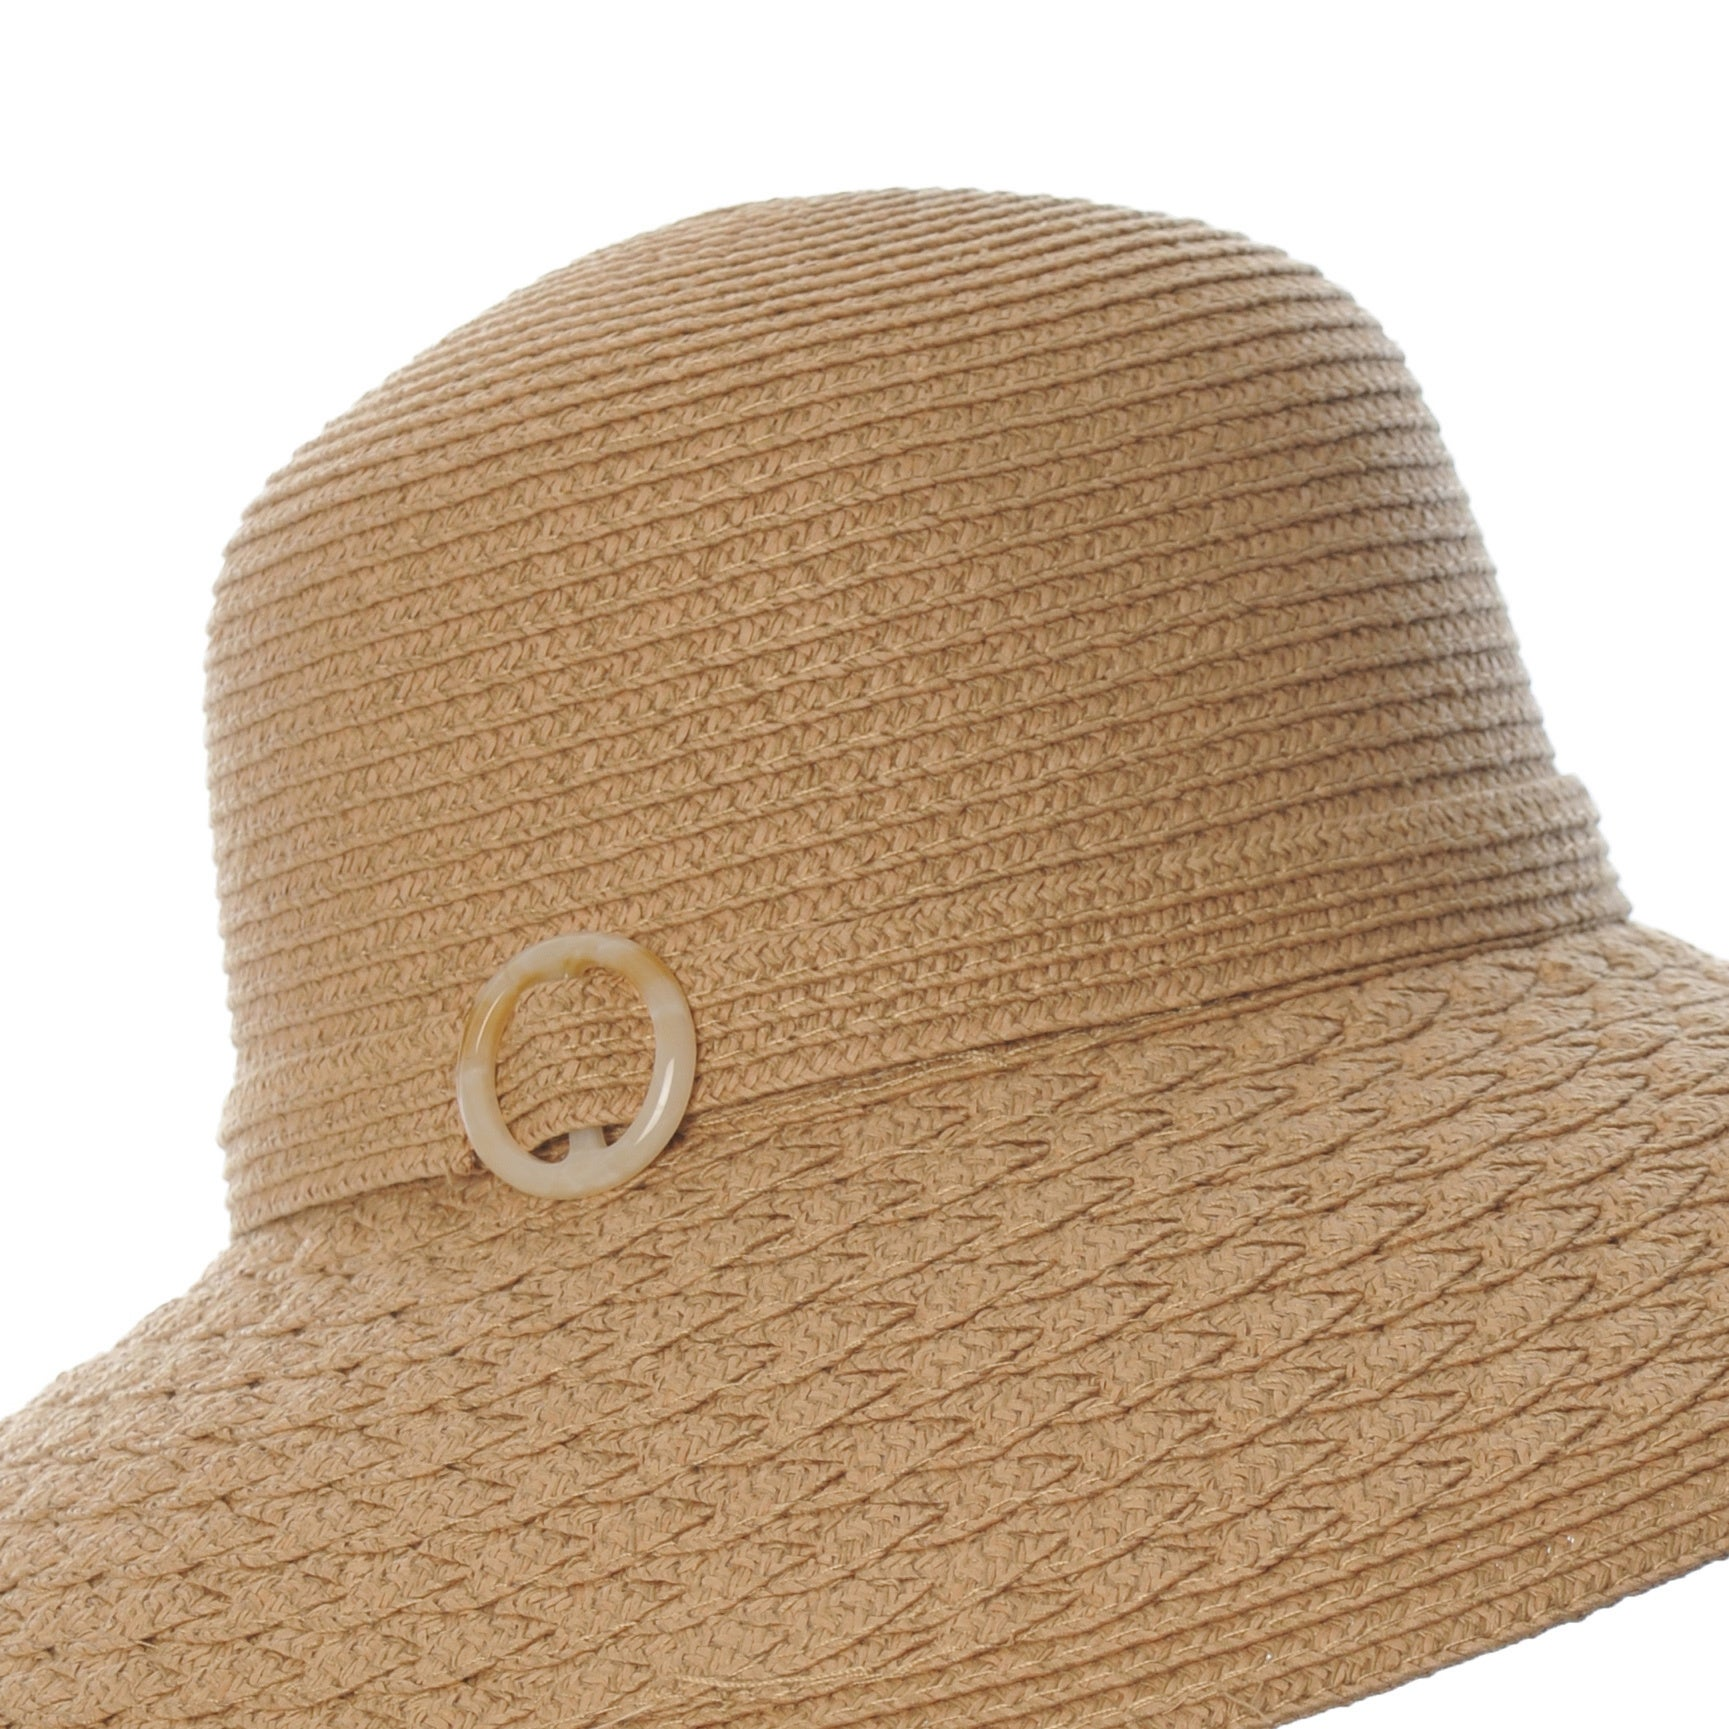 Shop Magid Hats Women s Downturned Brim Hat - Ships To Canada -  Overstock.ca - 9076449 2c130beae4d